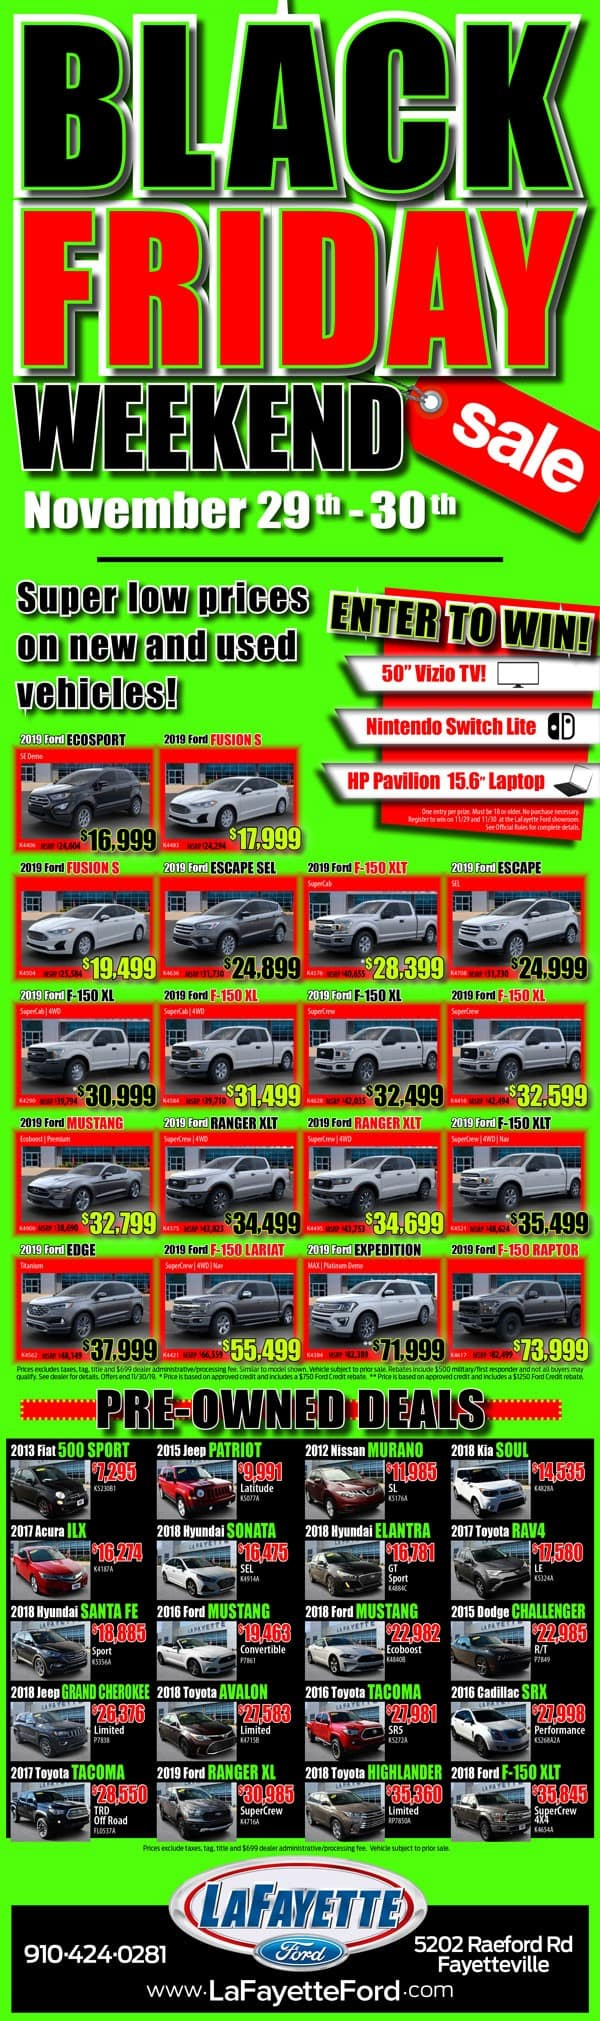 Black Friday Weekend Sale Nov 29 And 30 Lafayette Ford